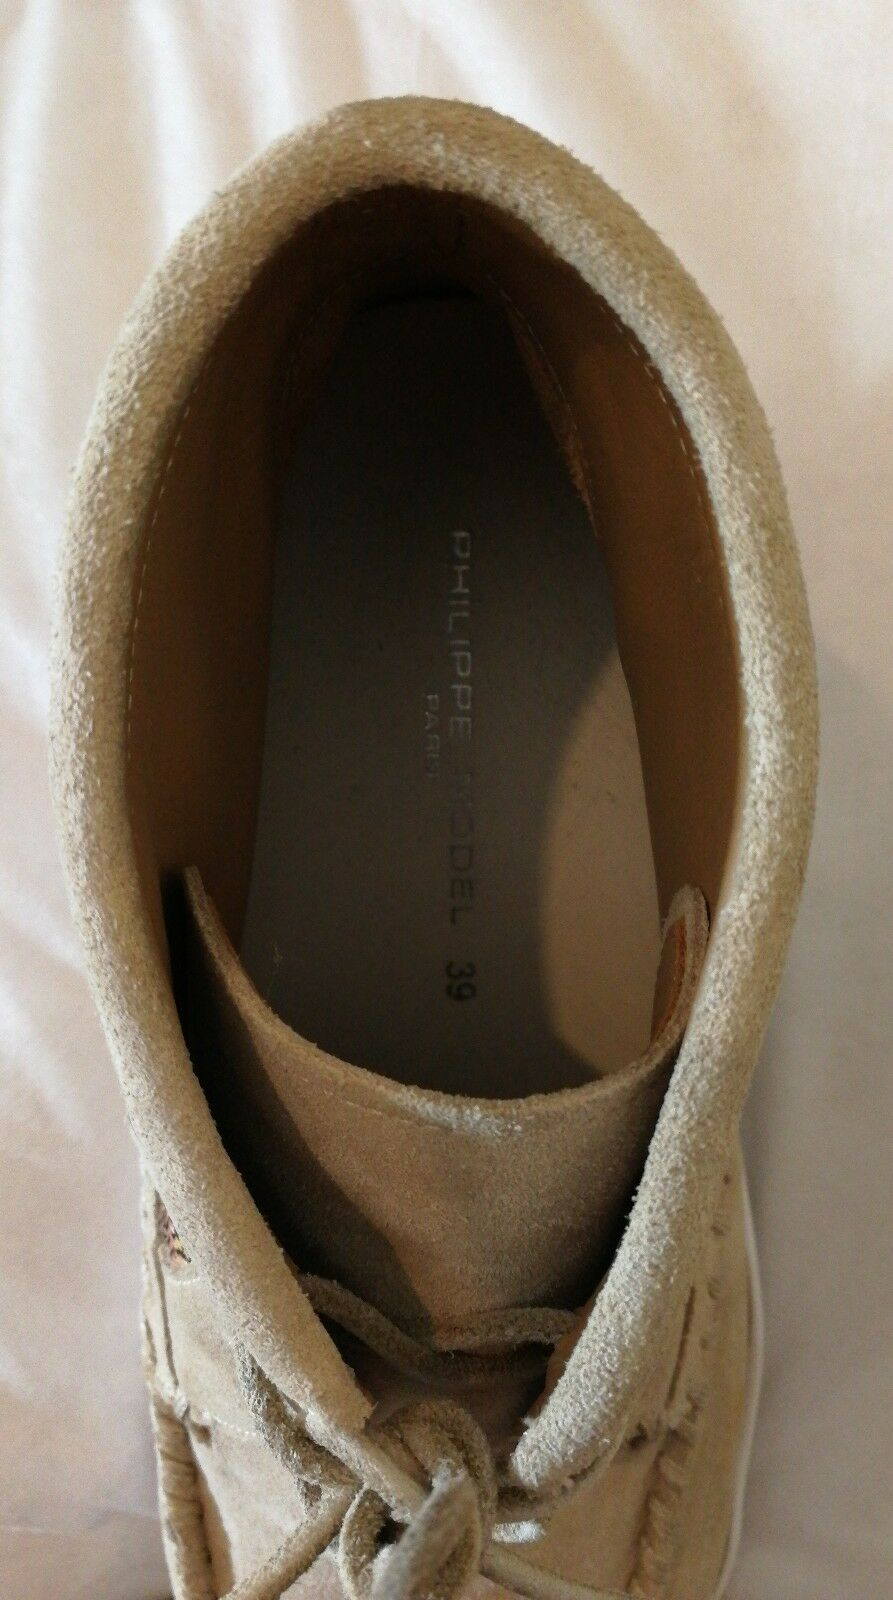 Philippe Model Fringed Lace-up Suede Leather Sneakers Trainers Beige Beige Beige uk 6 eu 39 ad9e11